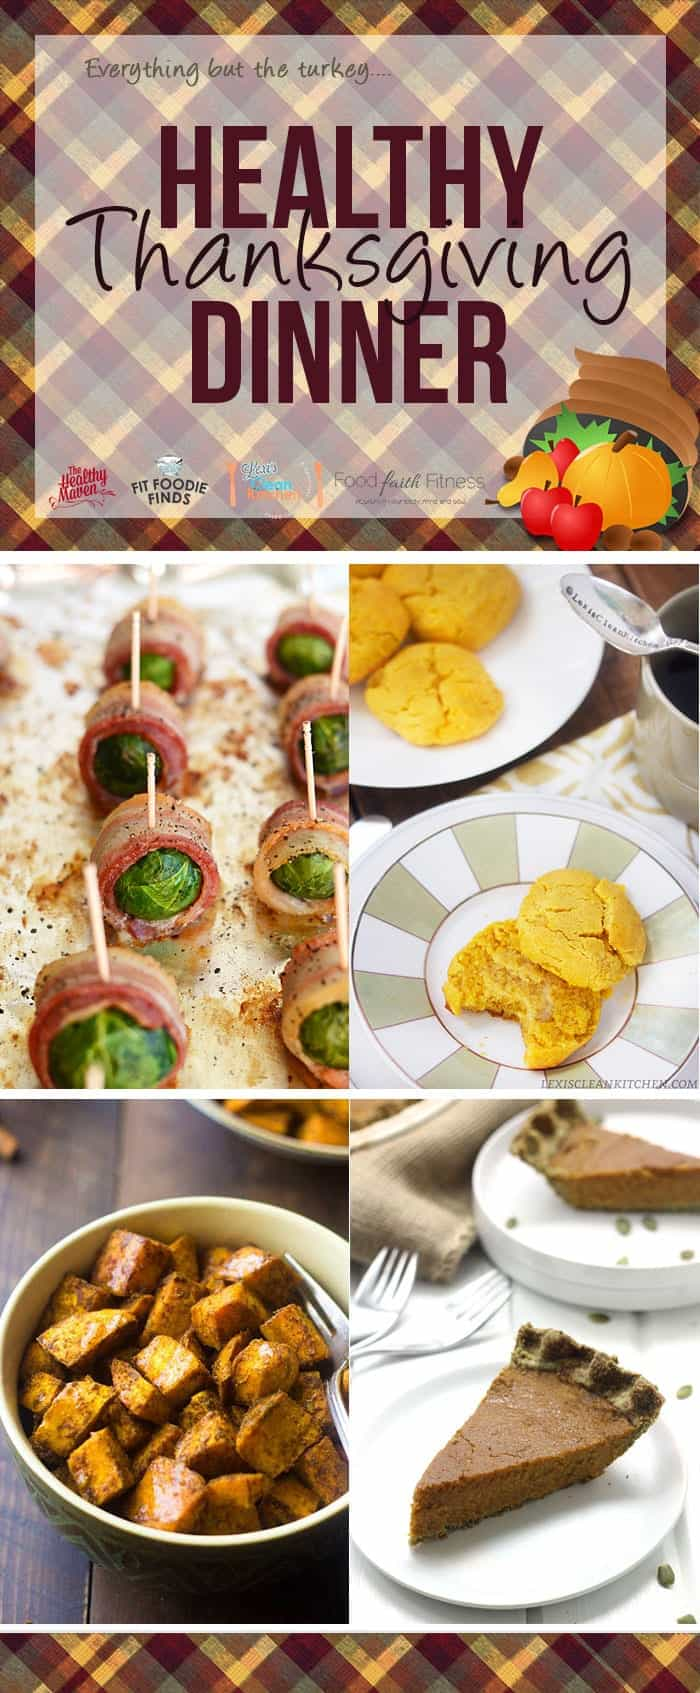 Healthy Thanksgiving Dinner Ideas- paleo recipes made with no refined sugar, gluten, dairy, or grains!